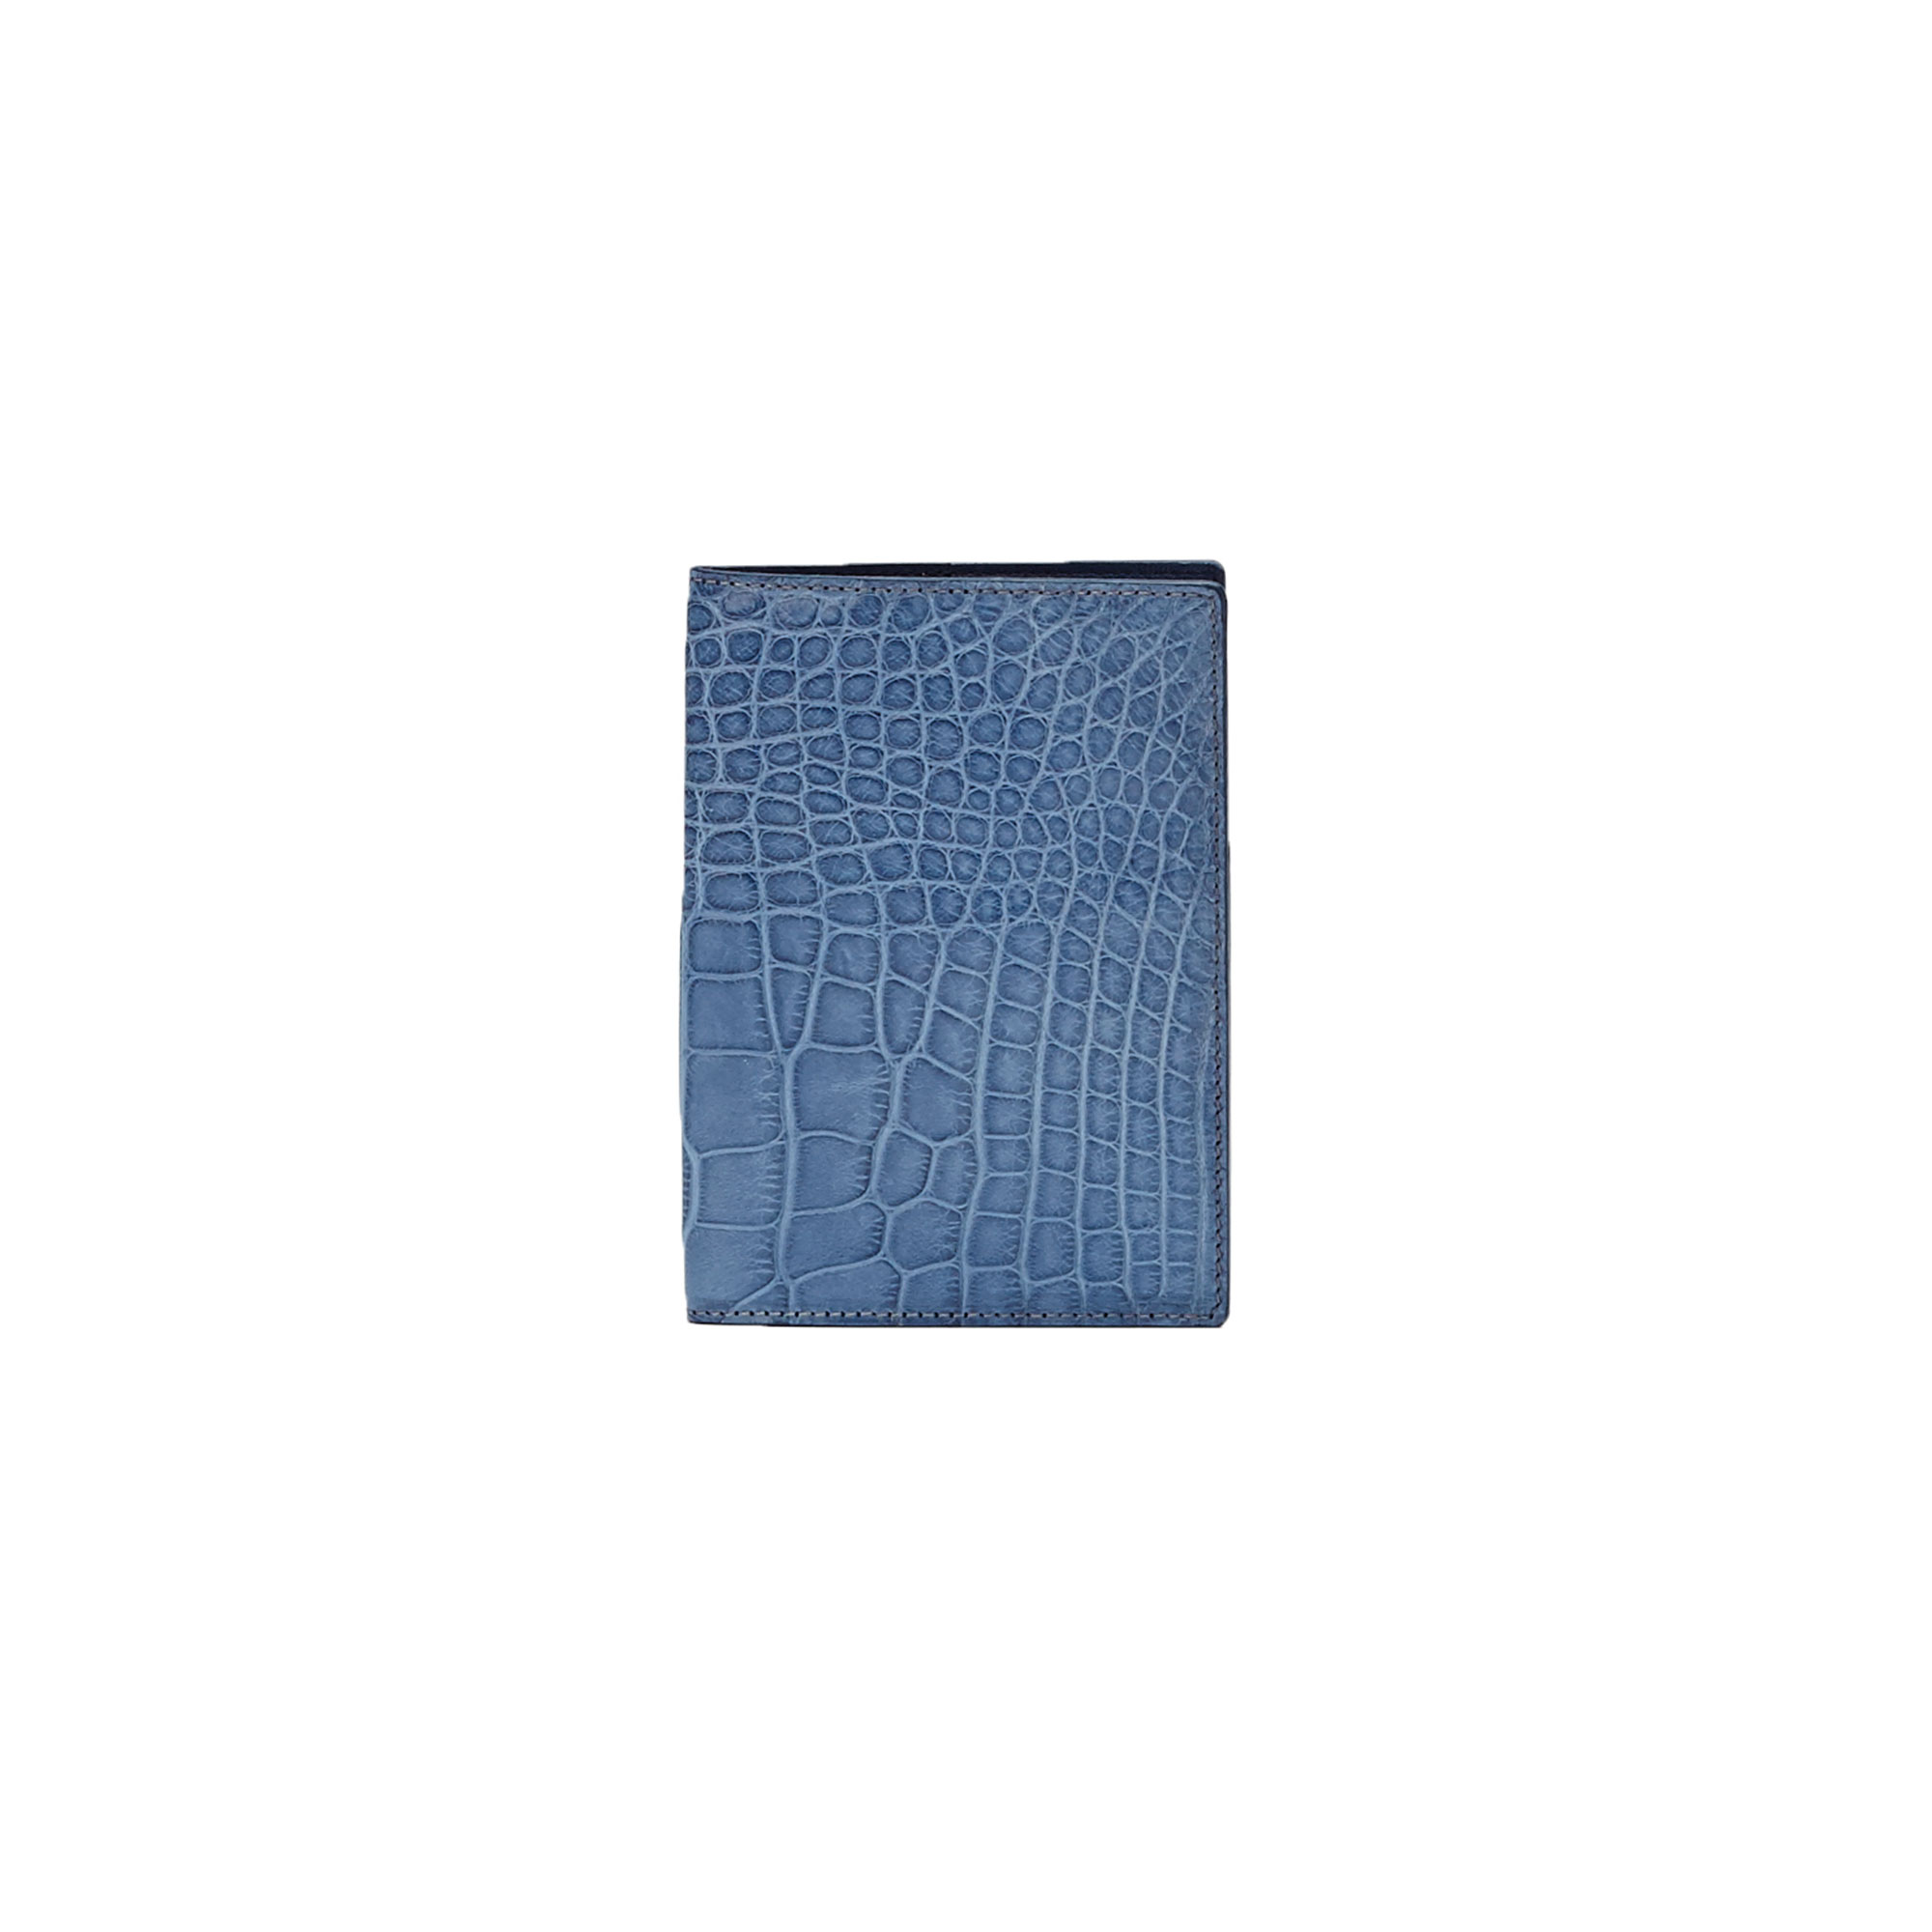 The navy alligator Passport Case by Bertoni 1949 01